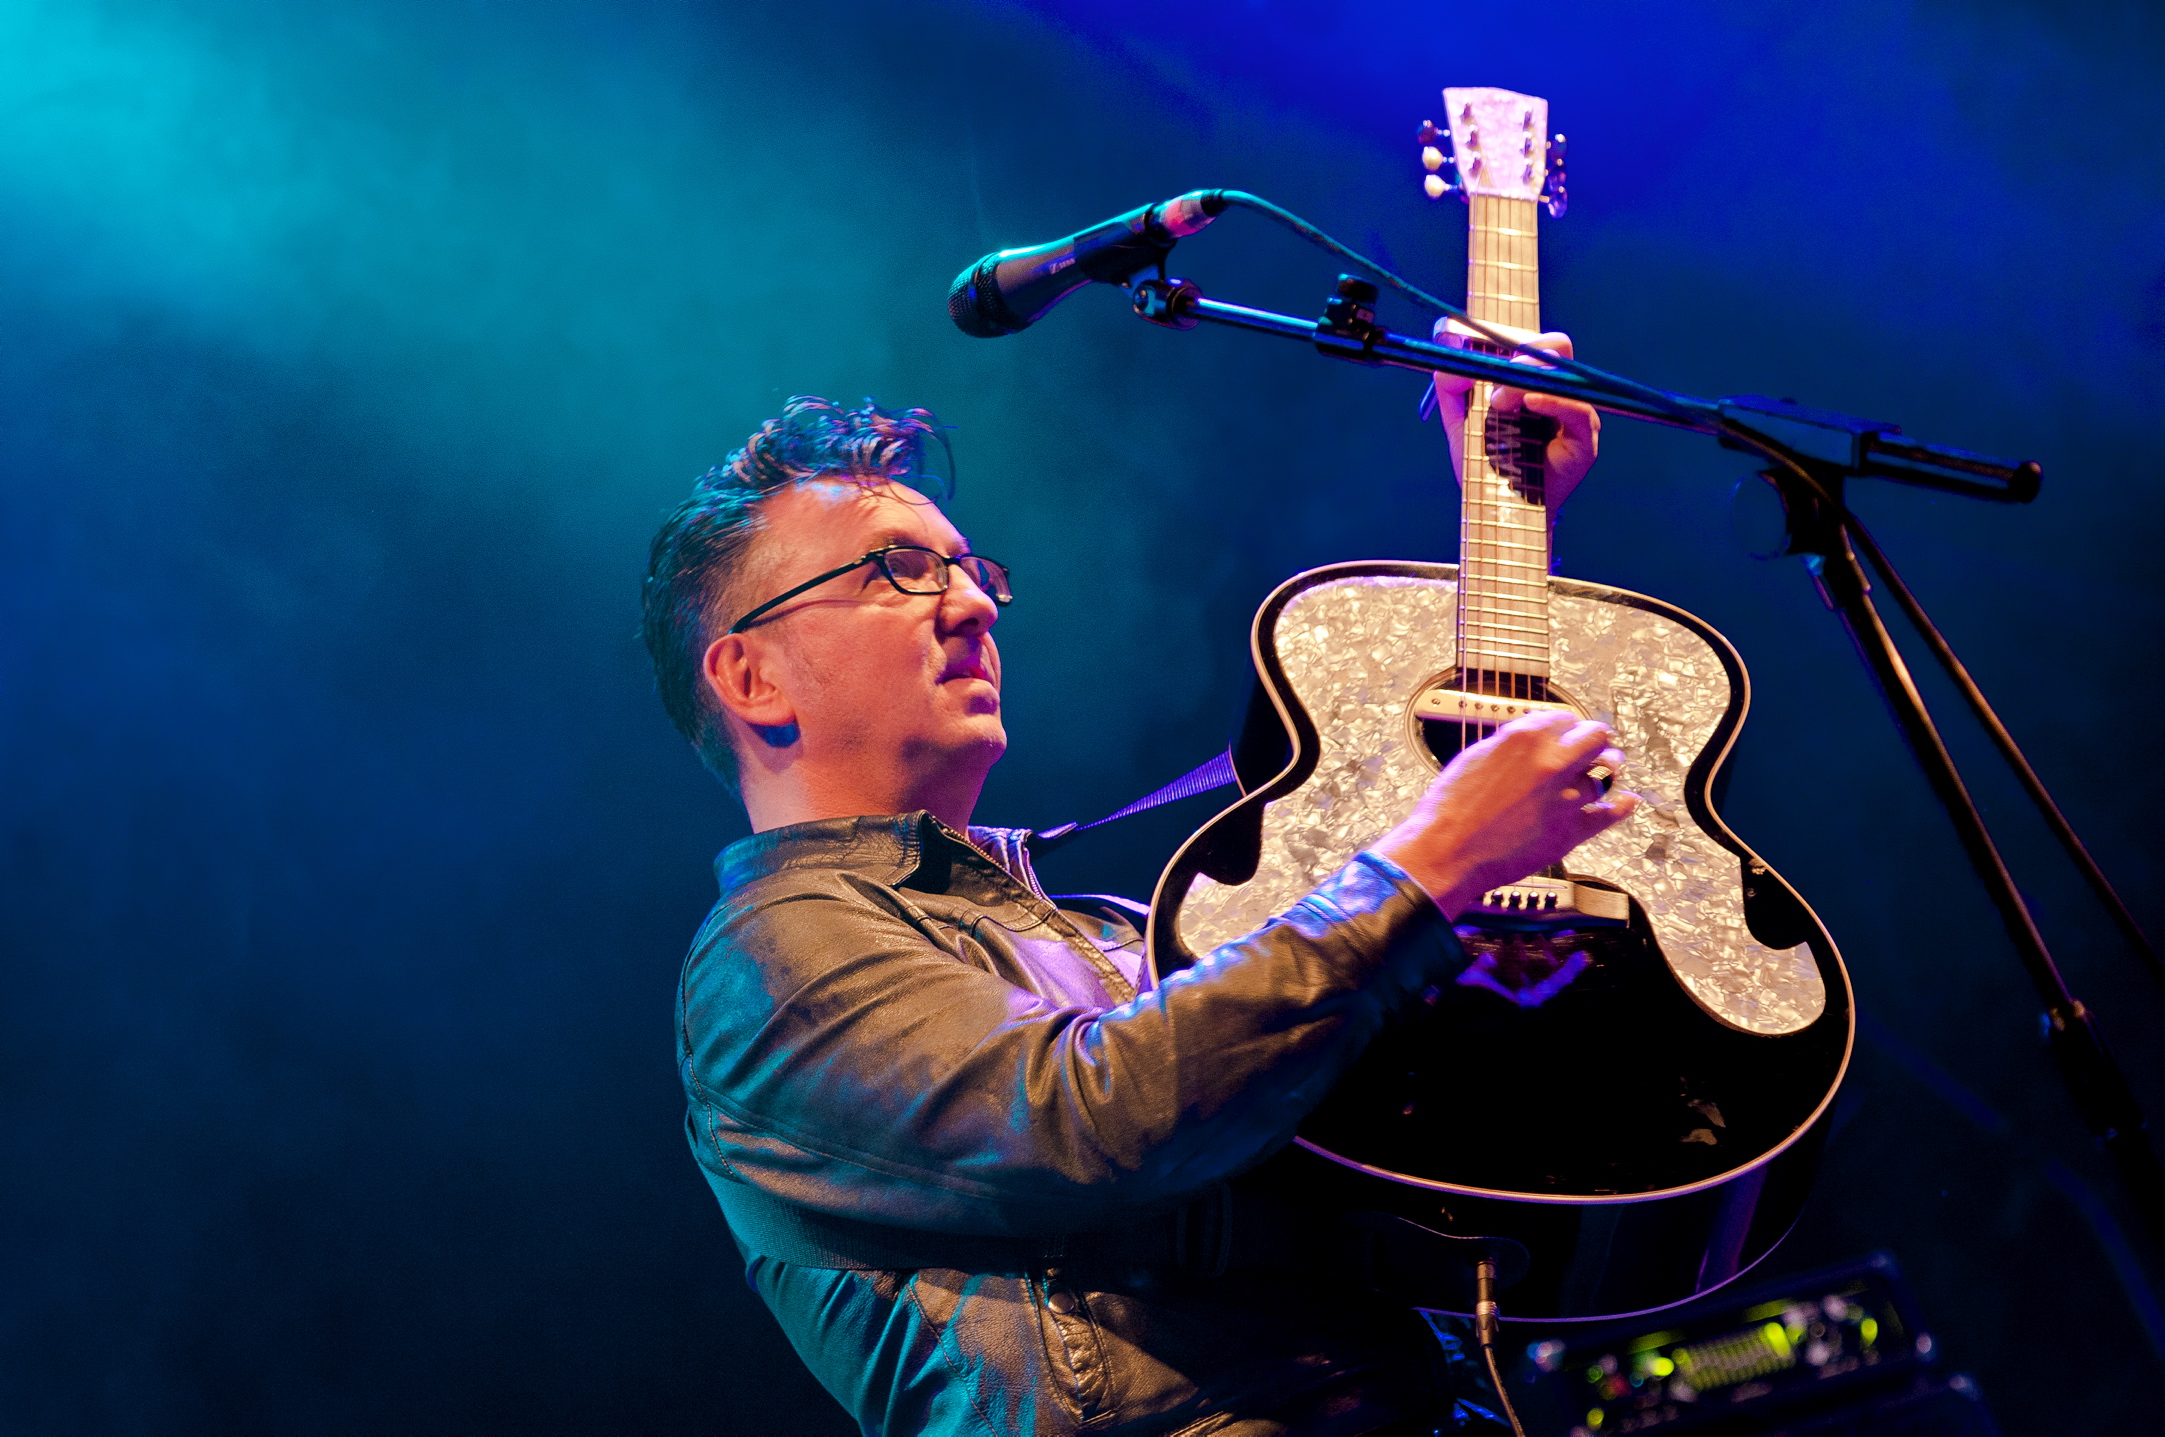 Richard Hawley on stage at the Ramsbottom Festival